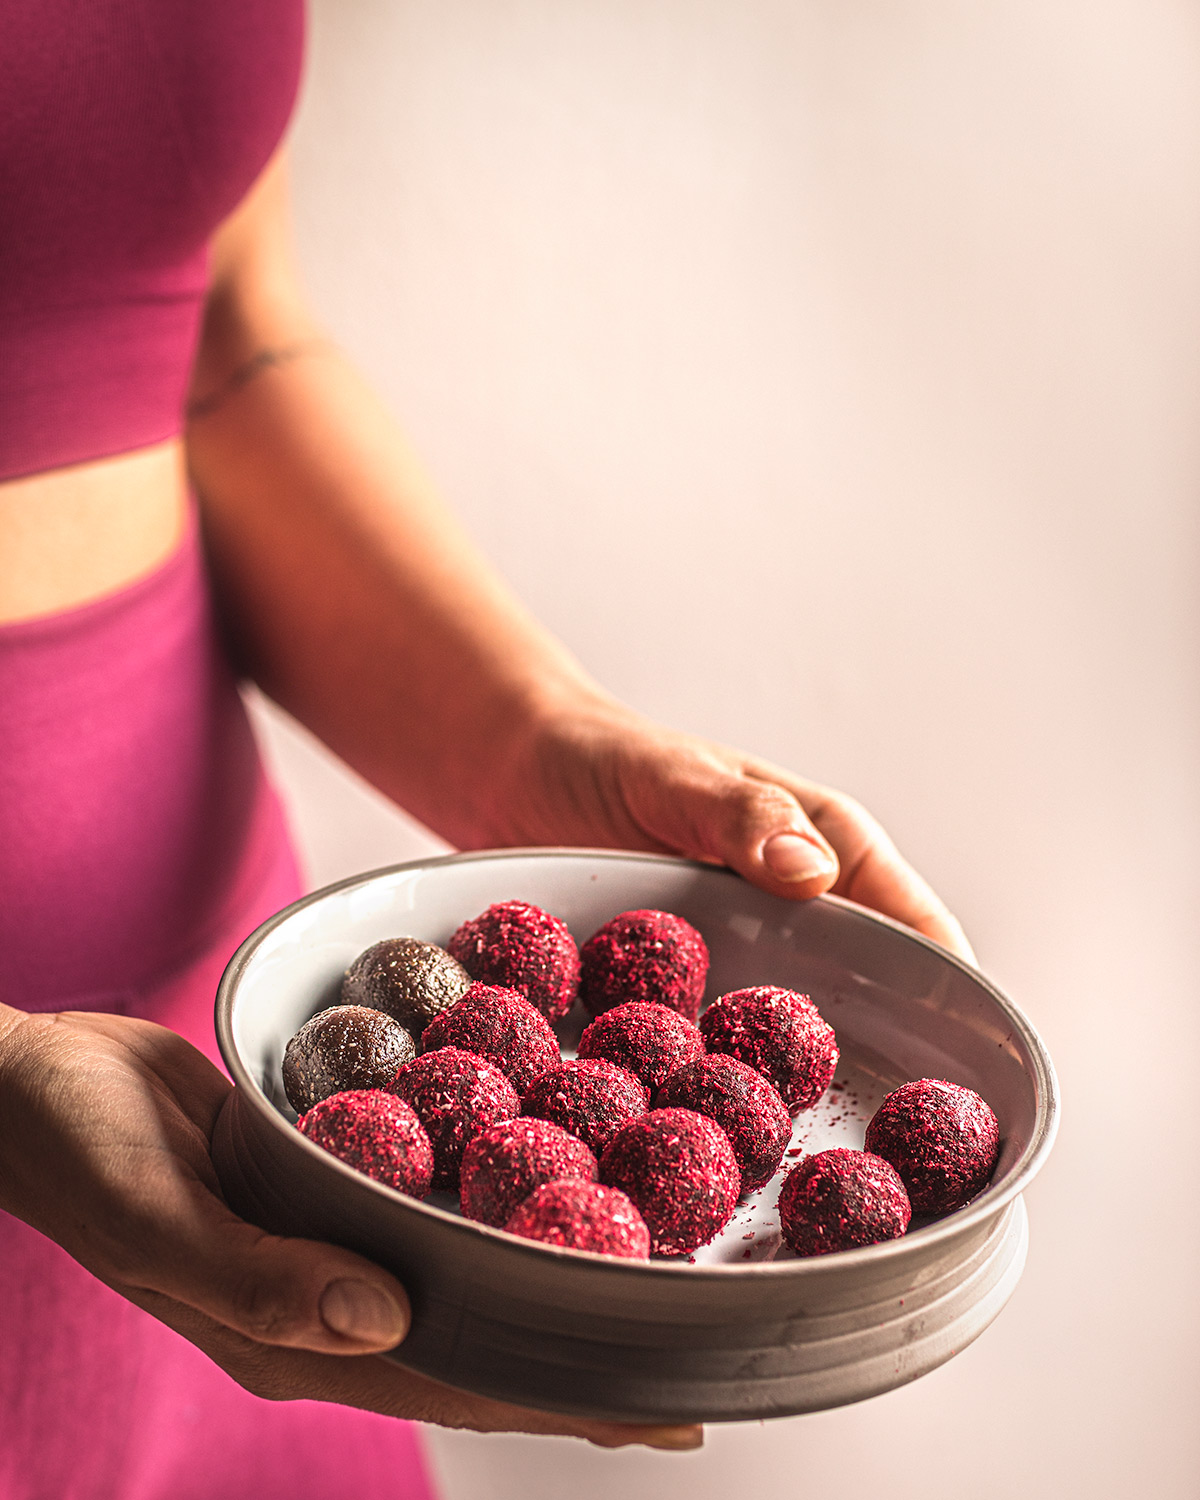 Yoga Energy Balls al Cacao Cocco e Lamponi gluten-free Vegan Peanut Butter and Raspberry Cacao Energy Balls post workout healthy snack